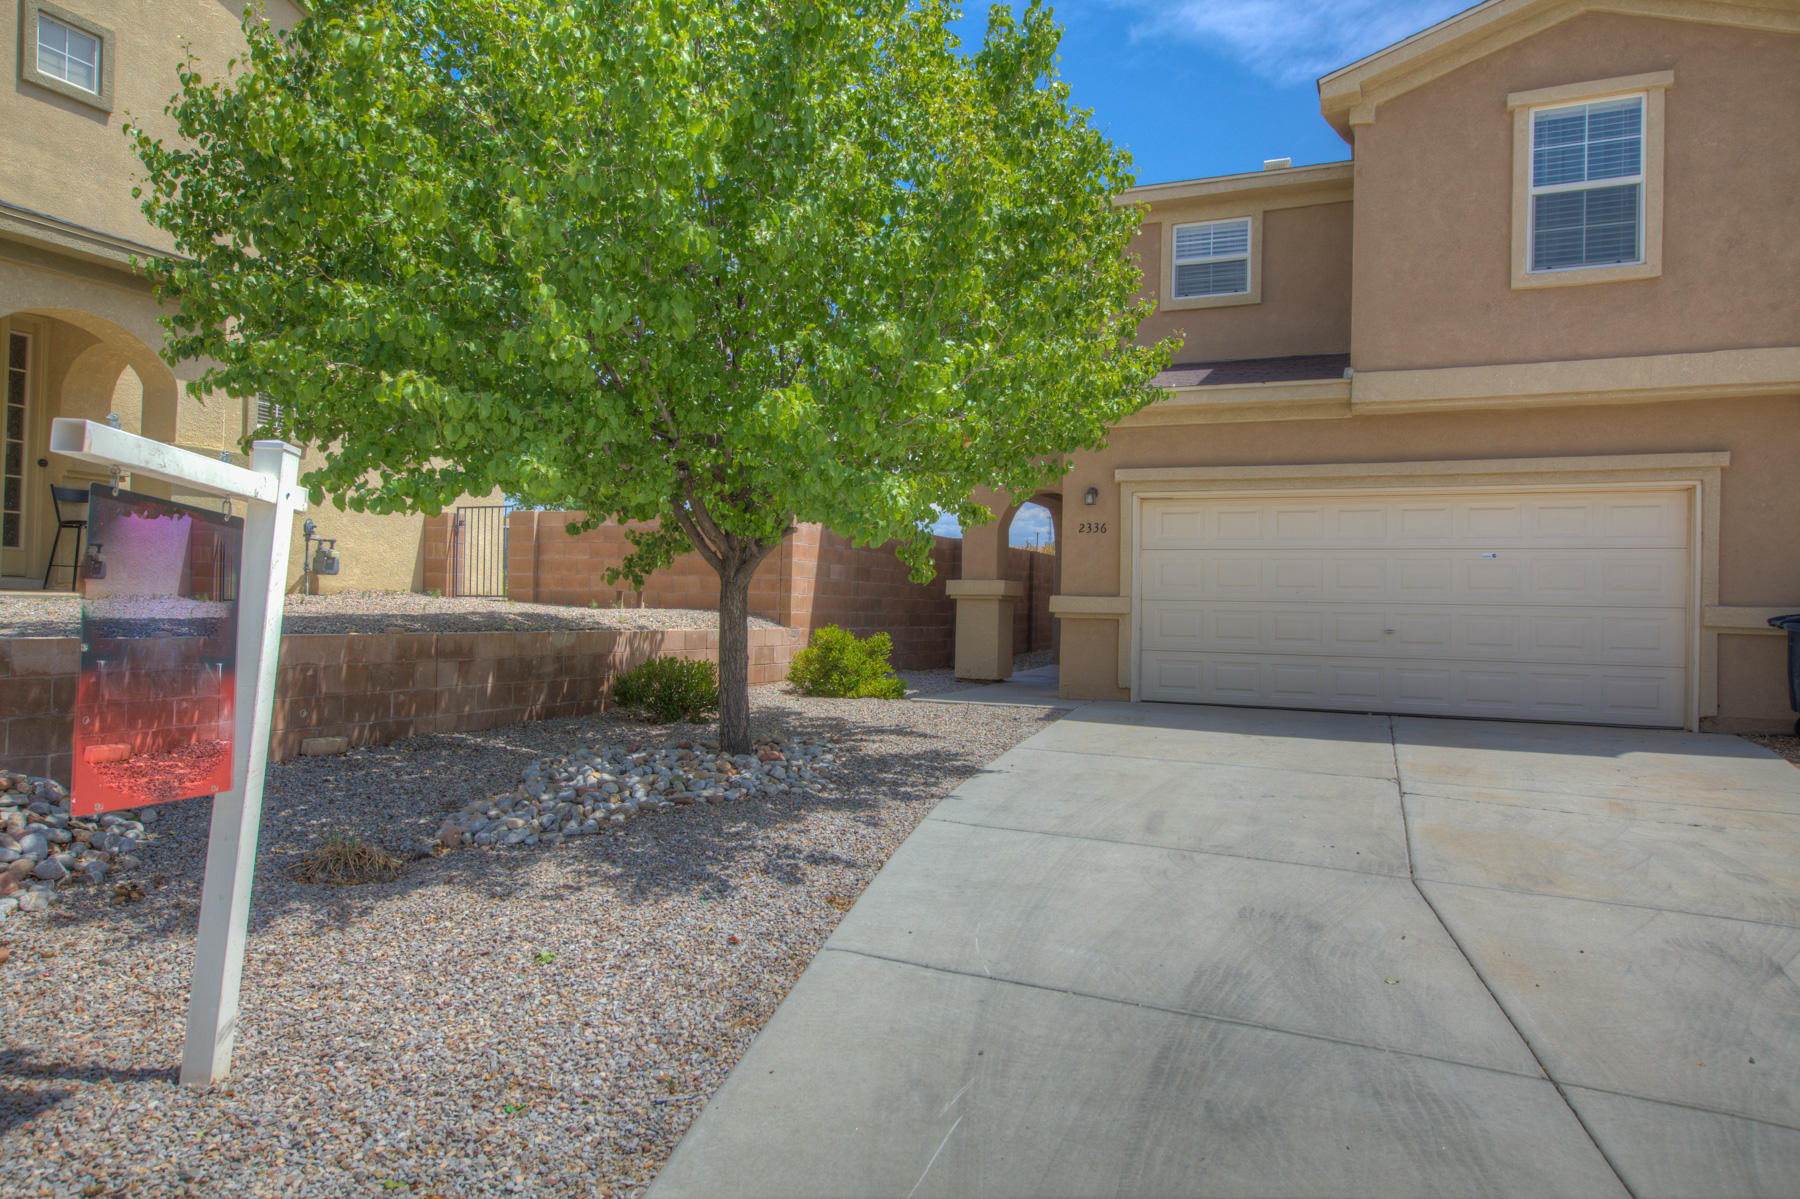 2336 Academic Place, Albuquerque NM 87106